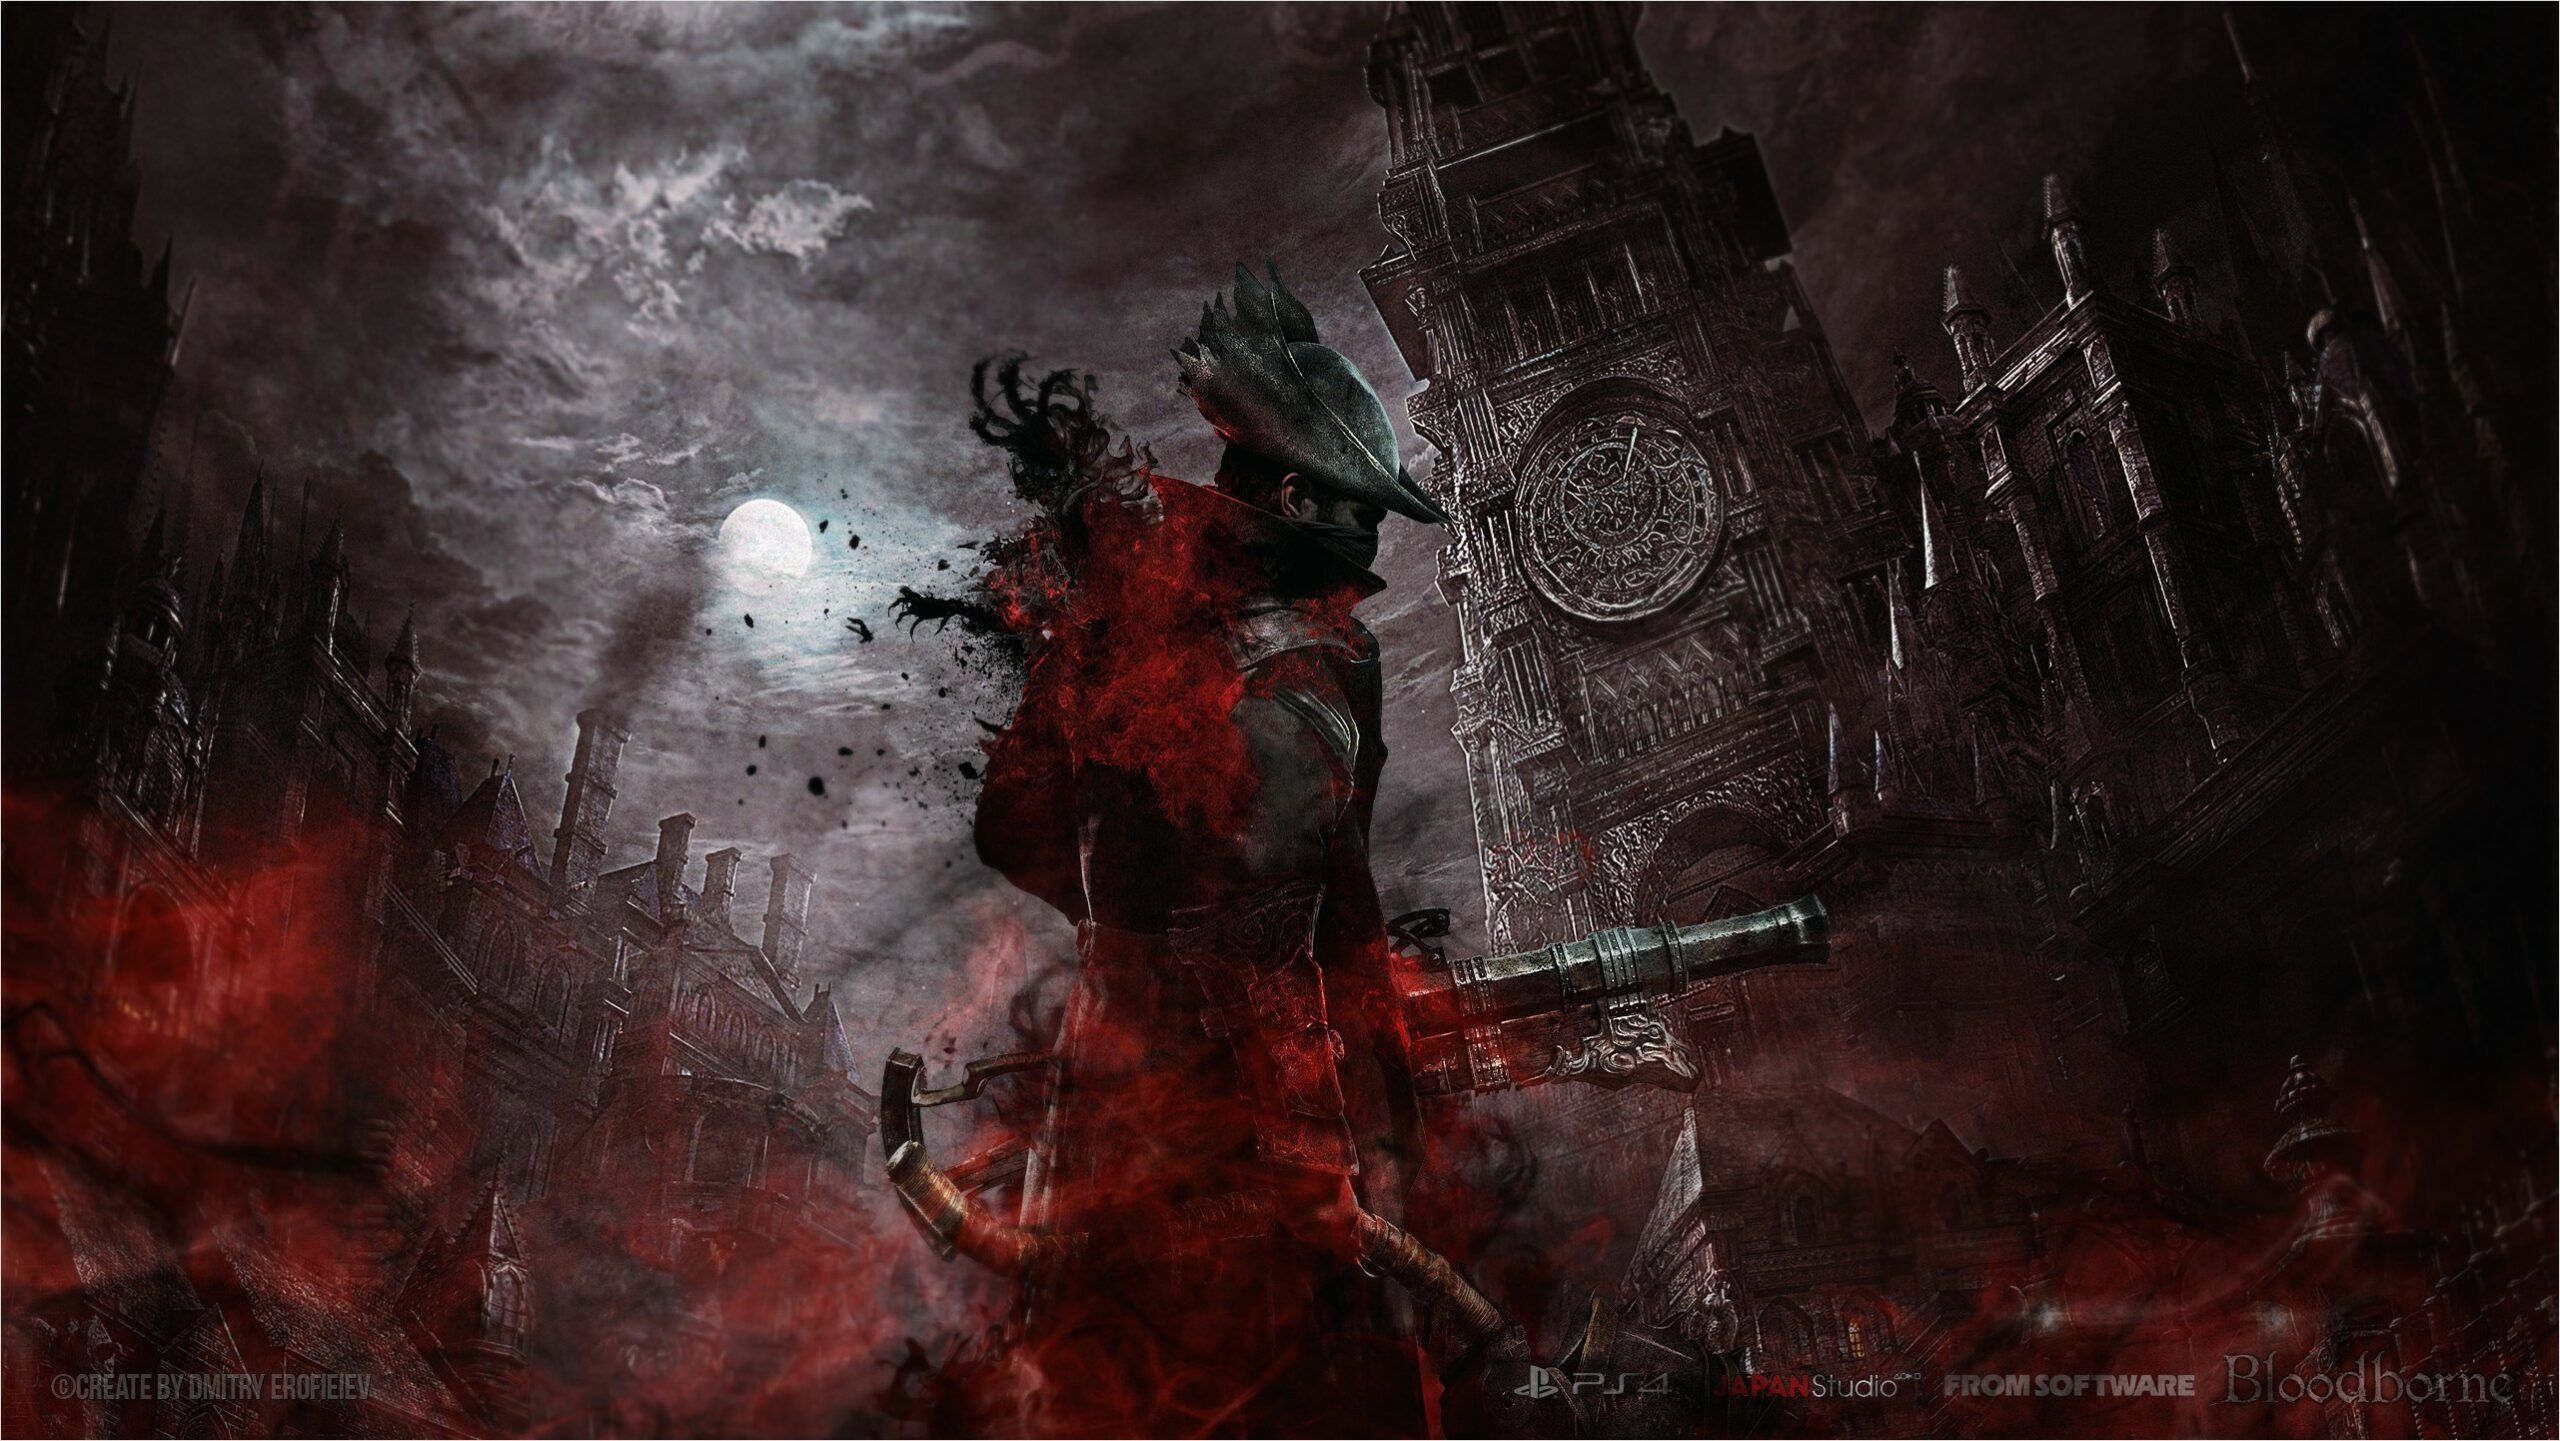 Bloodborne Wallpaper For Iphone And 4k Gaming Wallpapers For Laptop Download Now For Free Artist In 2020 Bloodborne Desktop Wallpapers Backgrounds 4k Gaming Wallpaper